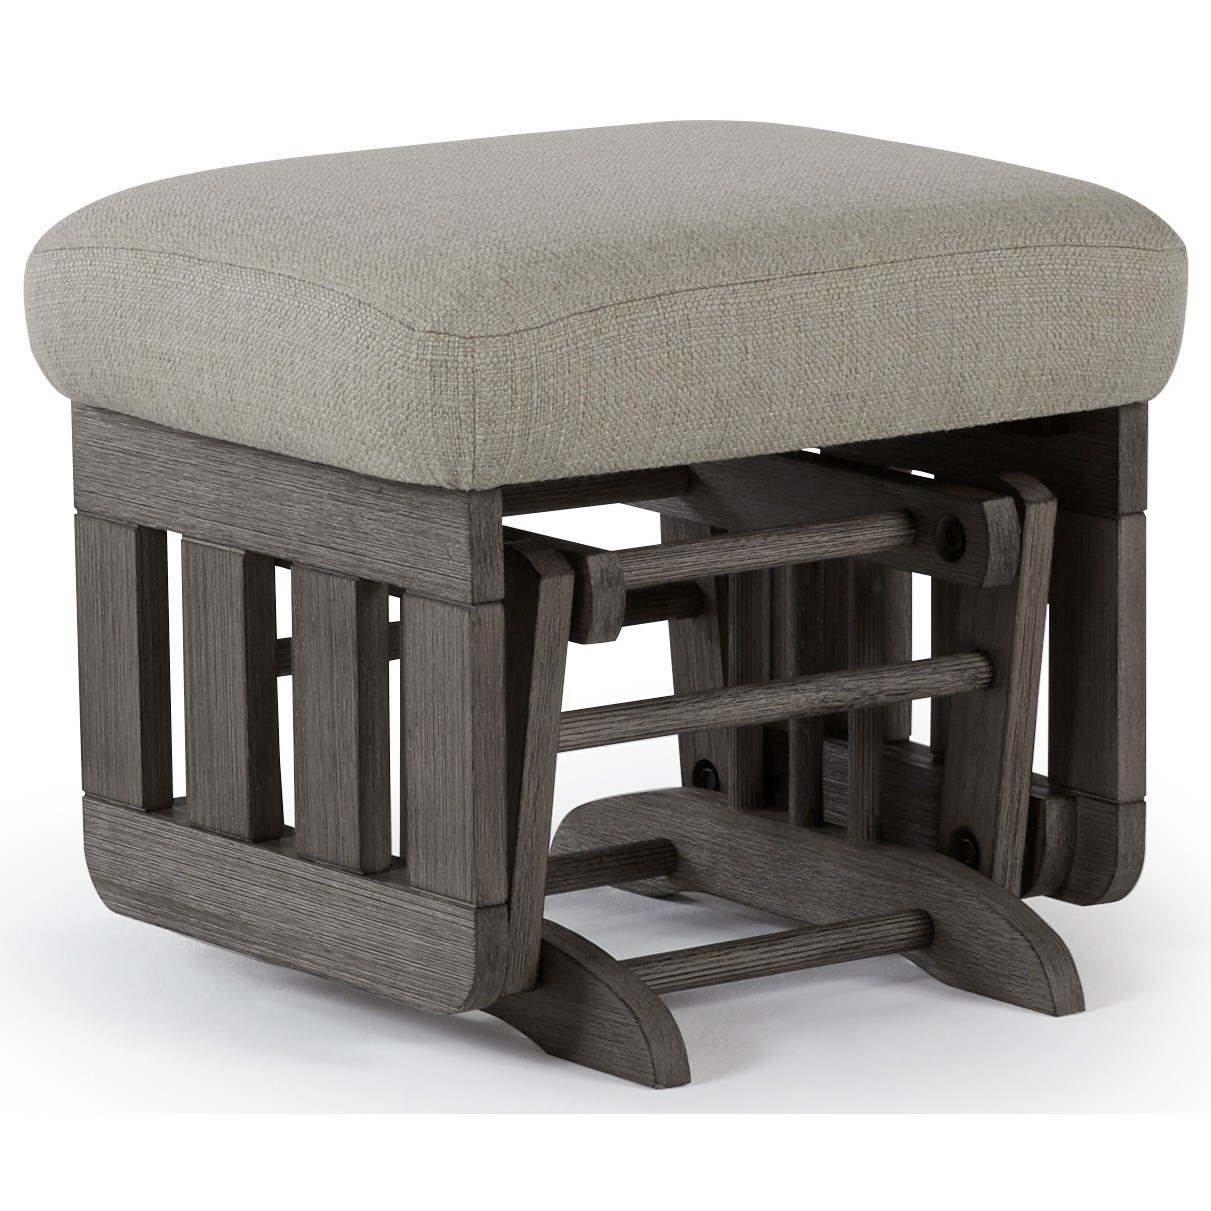 Heather Glider Ottoman by Best Home Furnishings at Baer's Furniture